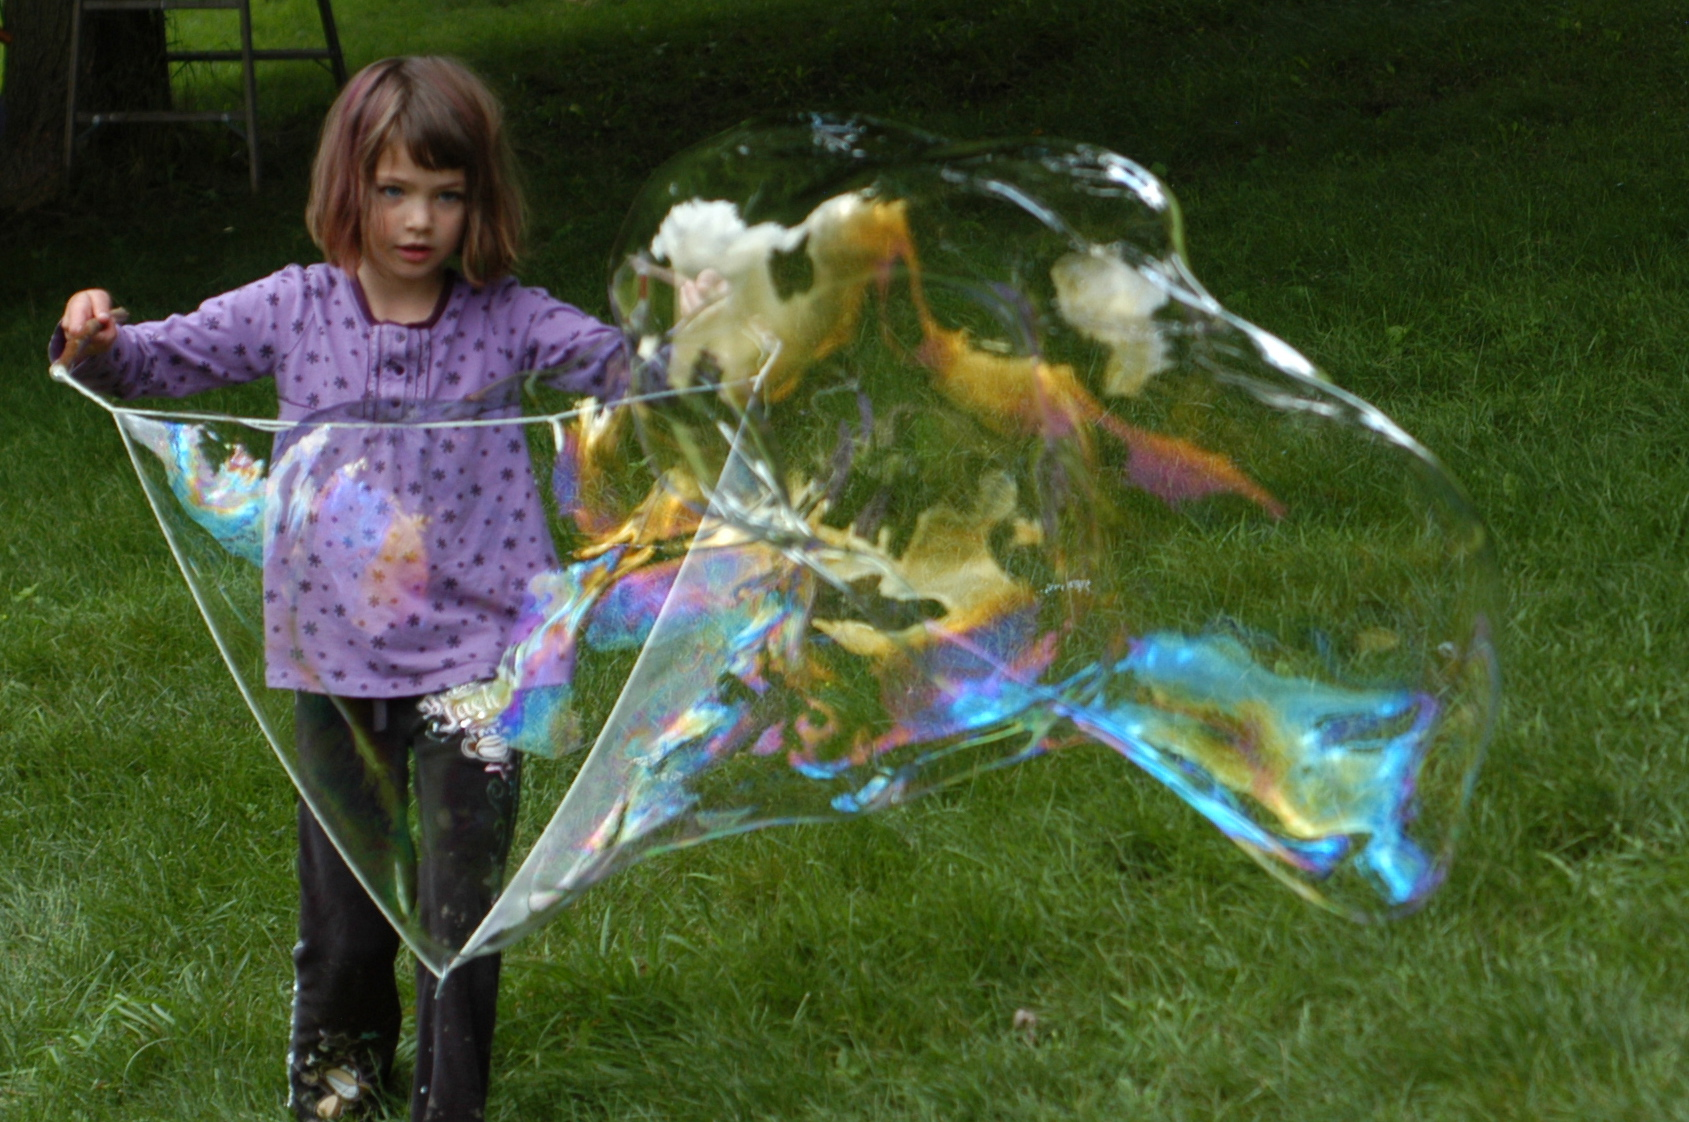 Giant bubbles and wand craftbnb for Giant bubble wand